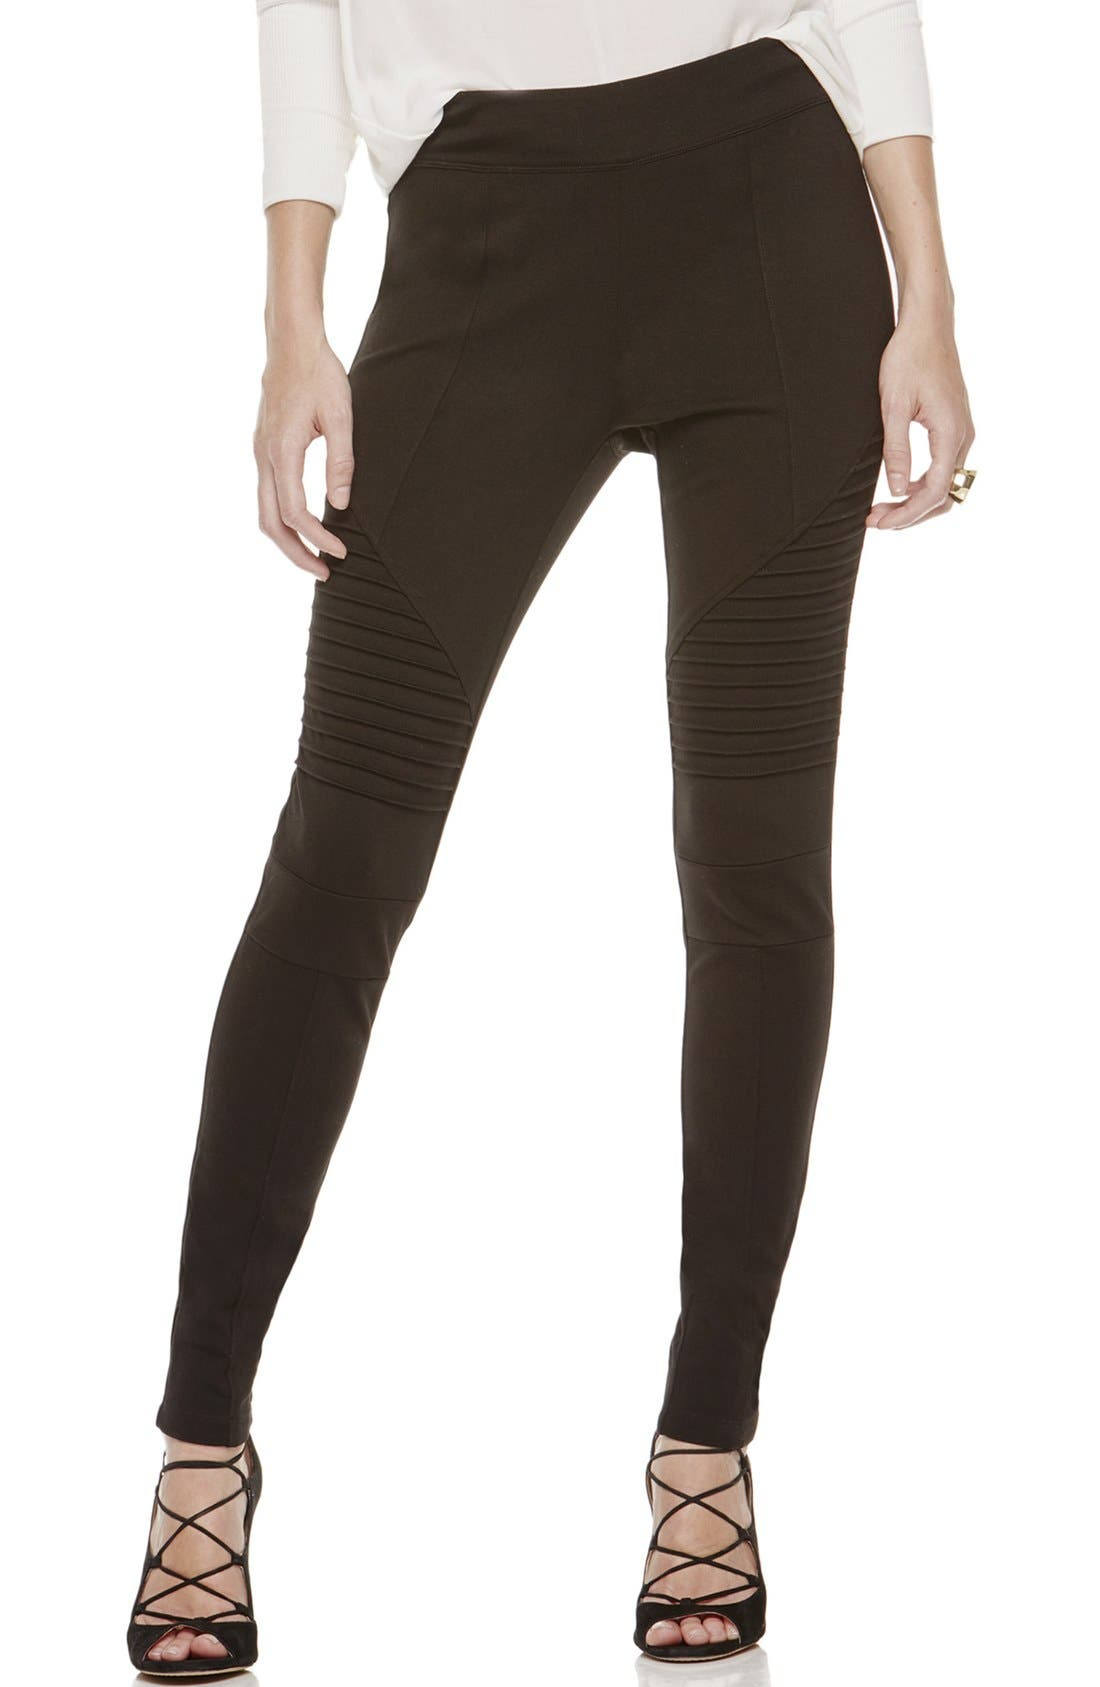 Alternate Image 1 Selected - Two by Vince Camuto Ponte Leggings